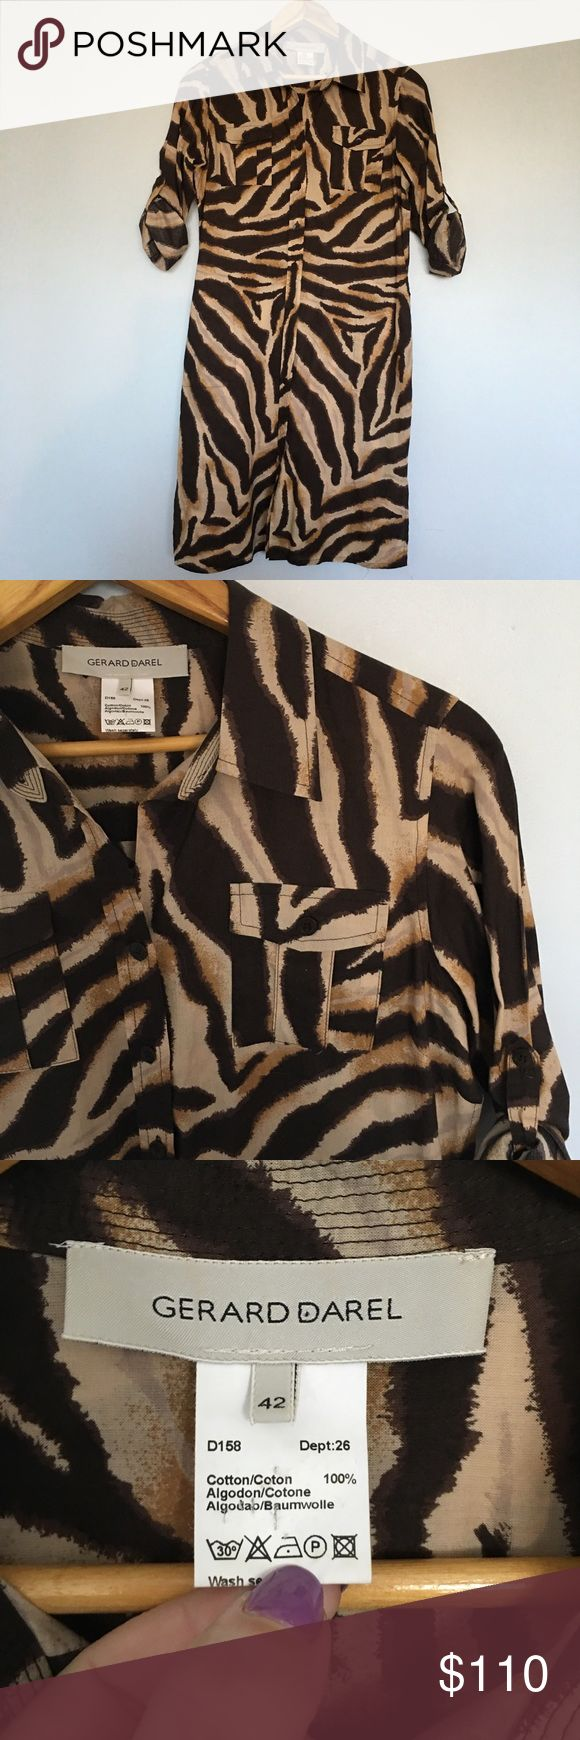 UK Designer Brand Geeard  Darel Tiger Print Dress Safari style dress. Dress is cotton but very light almost sheer. Absolute perfect condition. The equivalent for 42 according to website is a US 10. Measurements are chest 38 waist 38 and length 34. Gerard Darel Dresses Midi